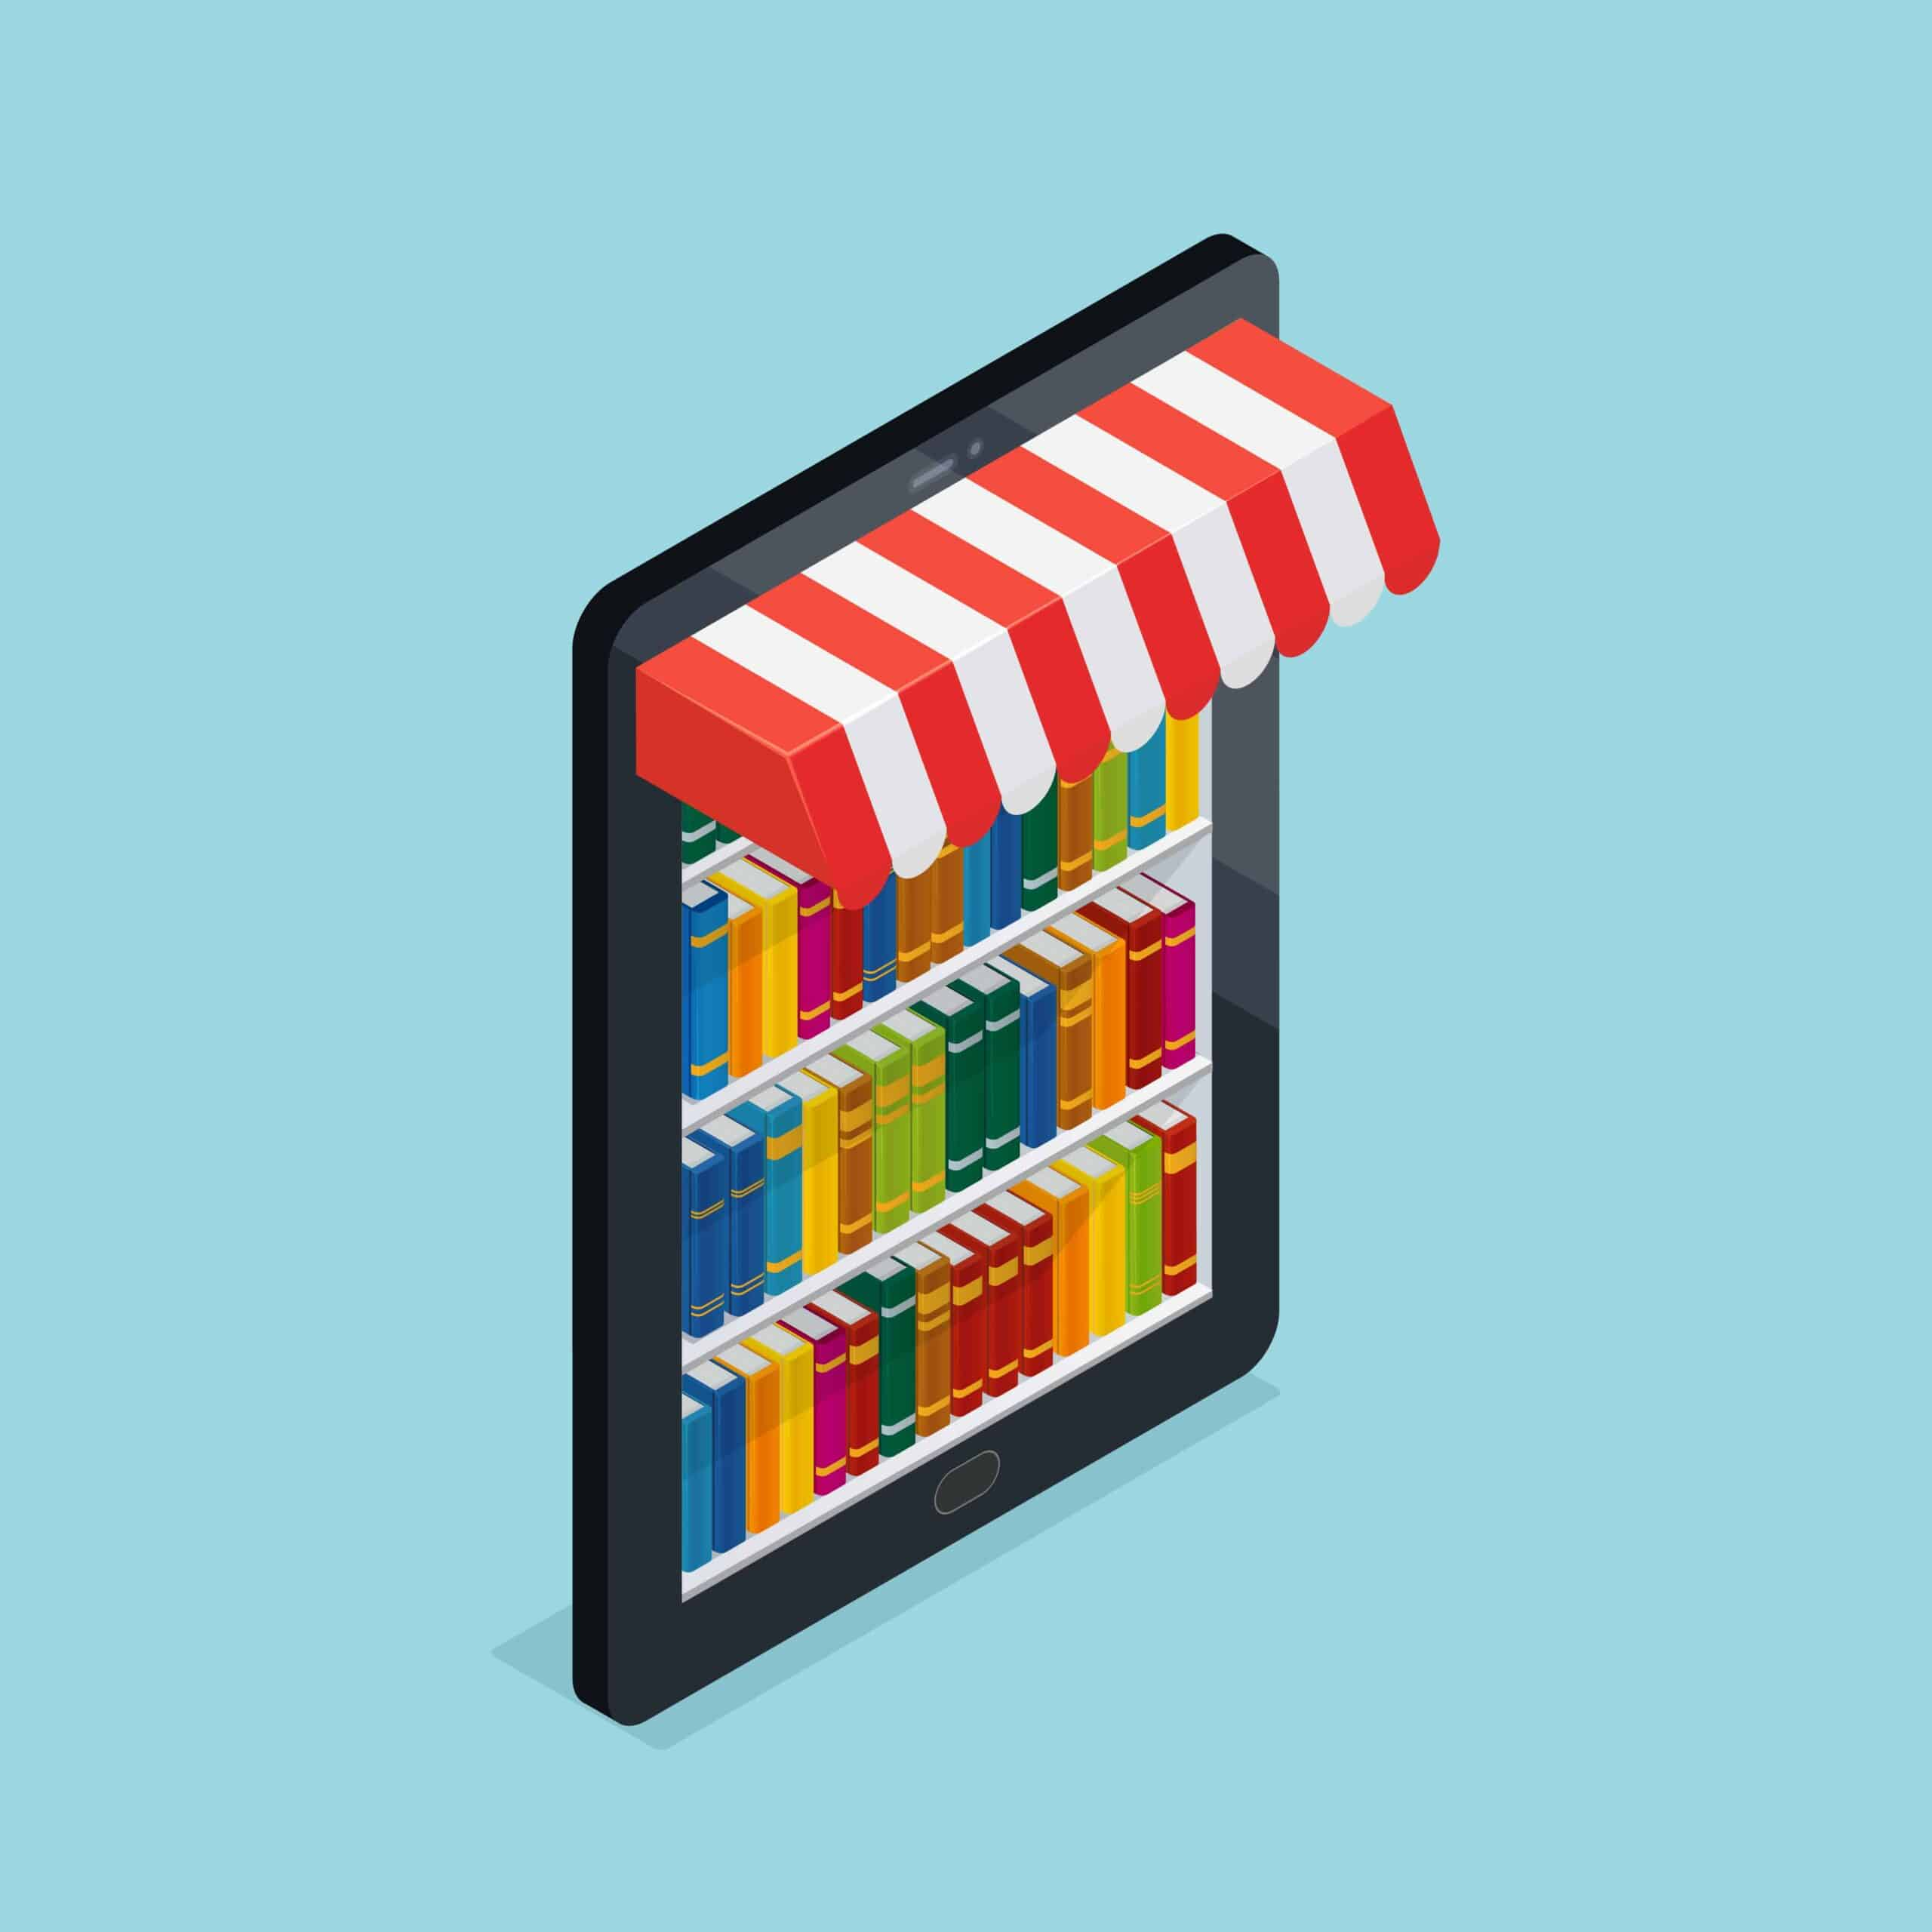 Eshop example with a Bookstore inside a Tablet Screen - eCommerce και eShops